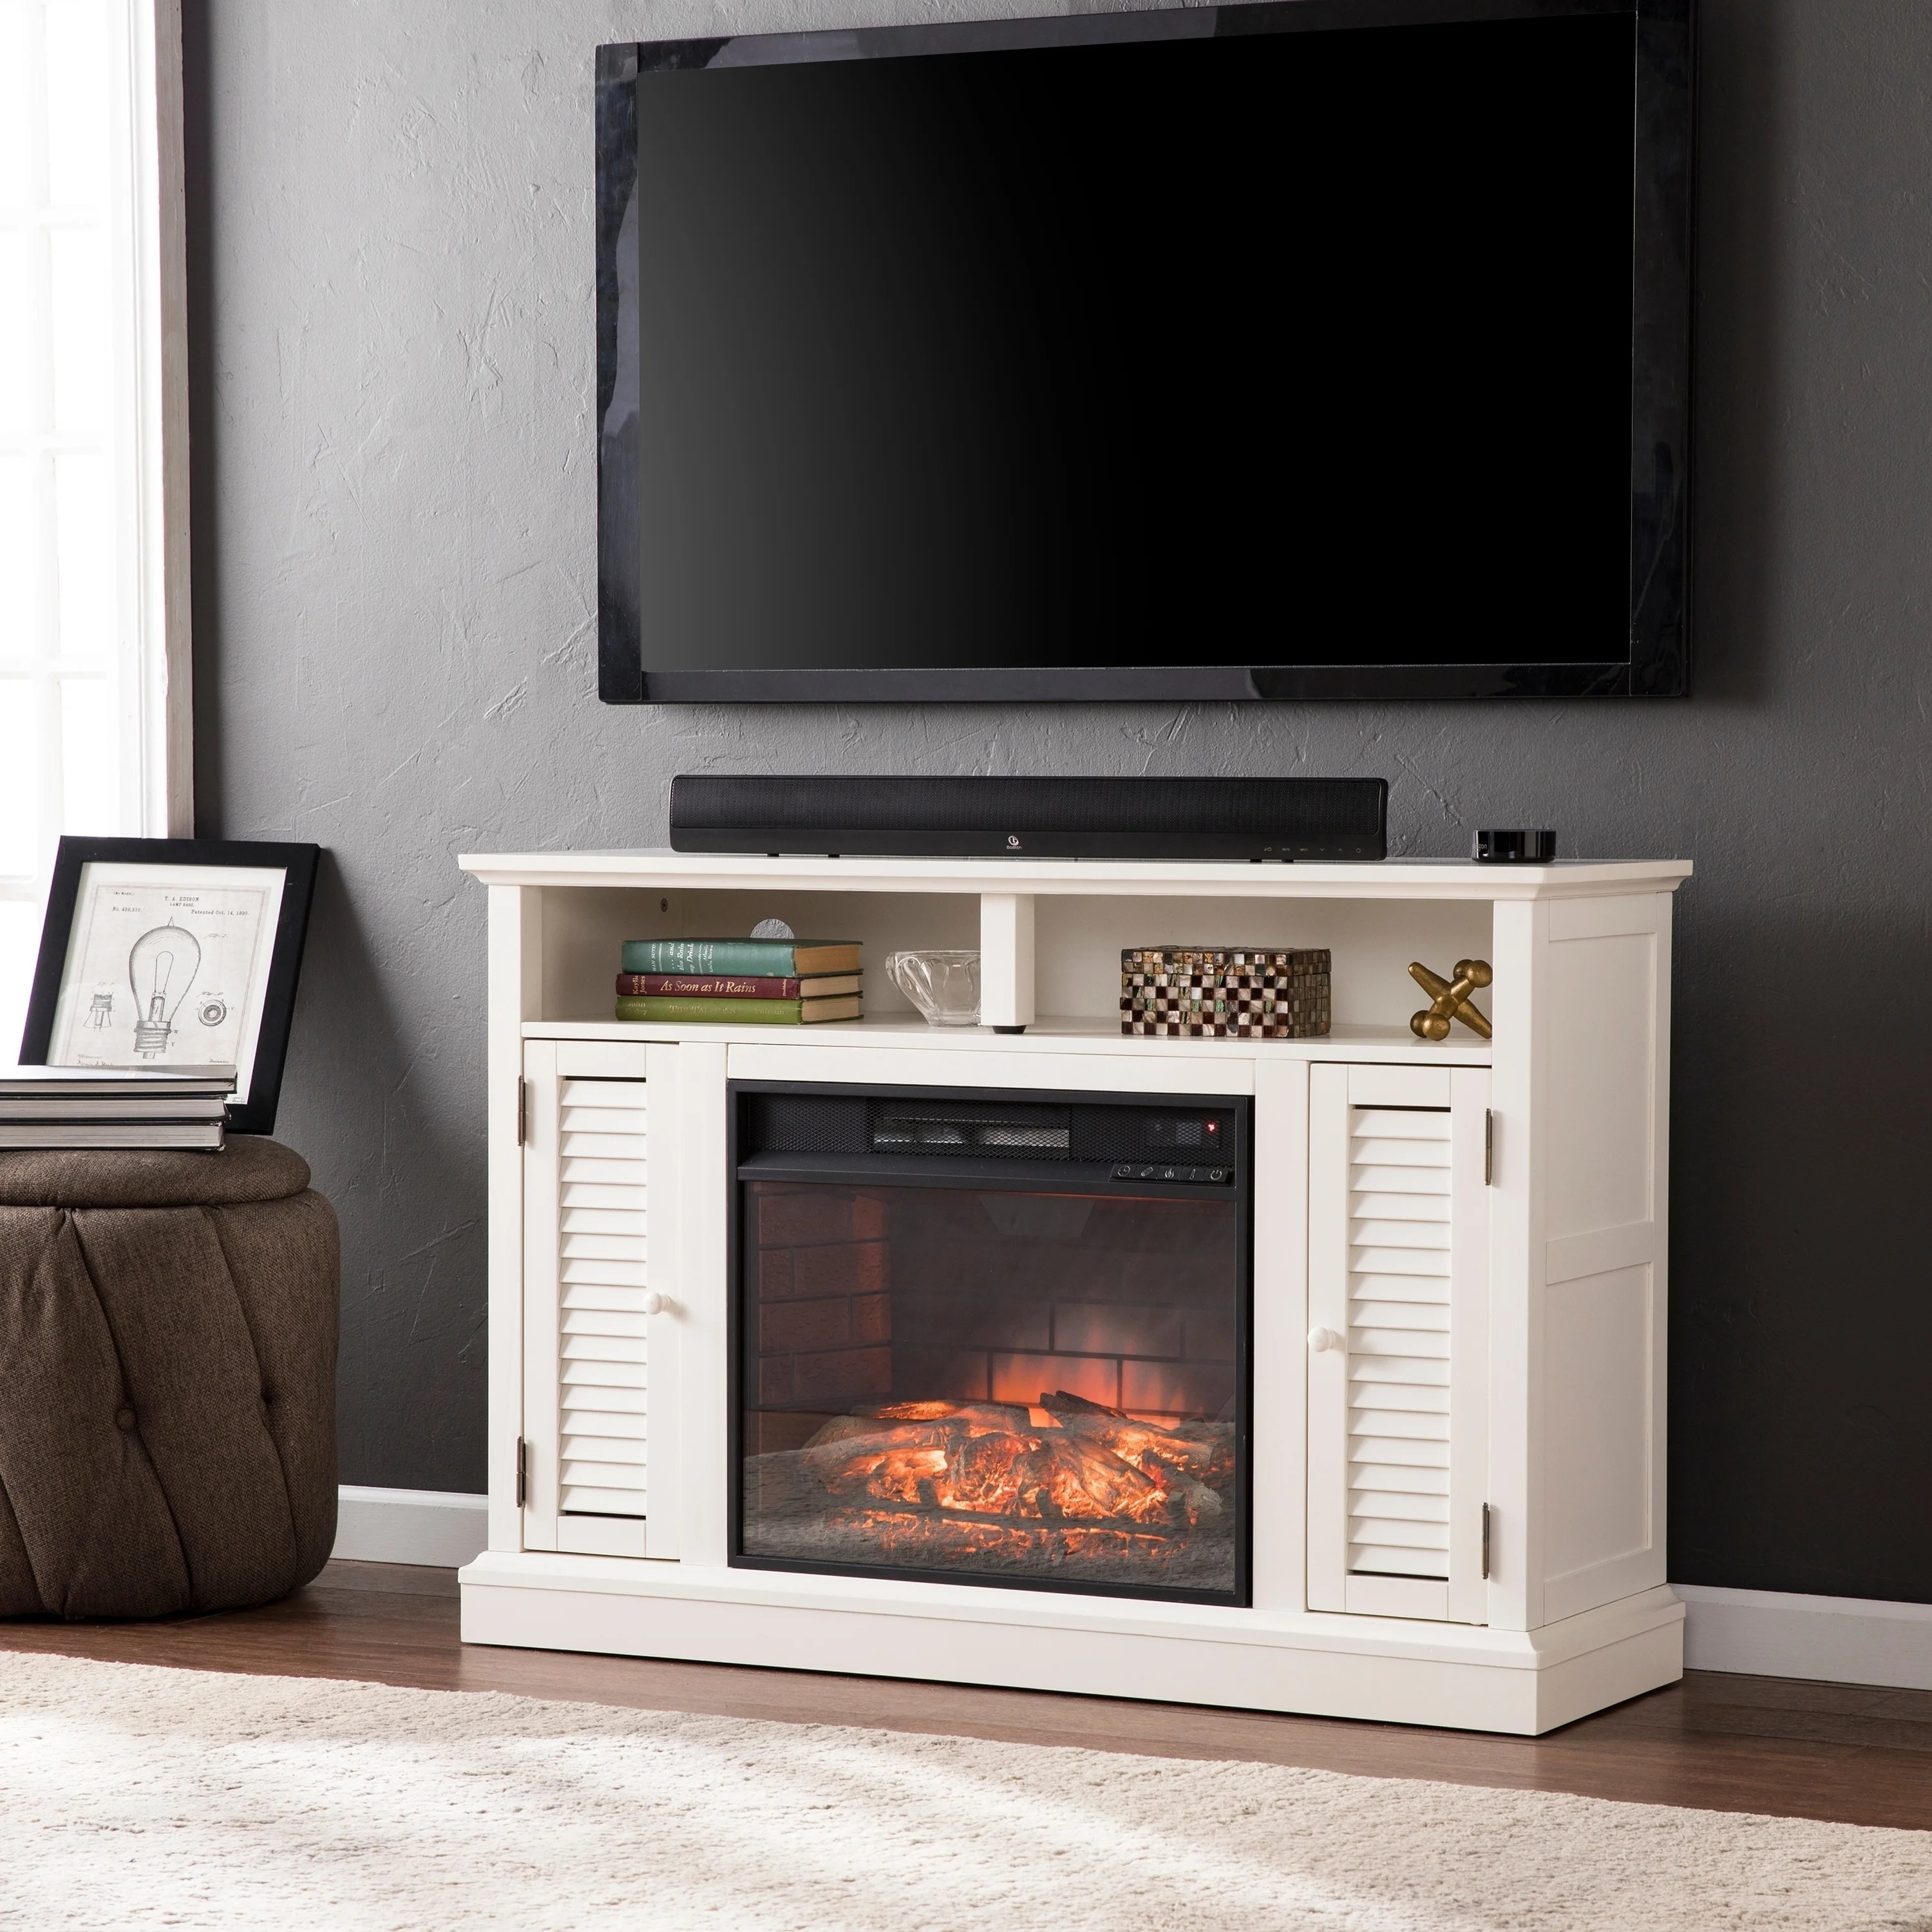 Fireplace Tv Combo Buy Media Console Fireplaces Online At Overstock Our Best